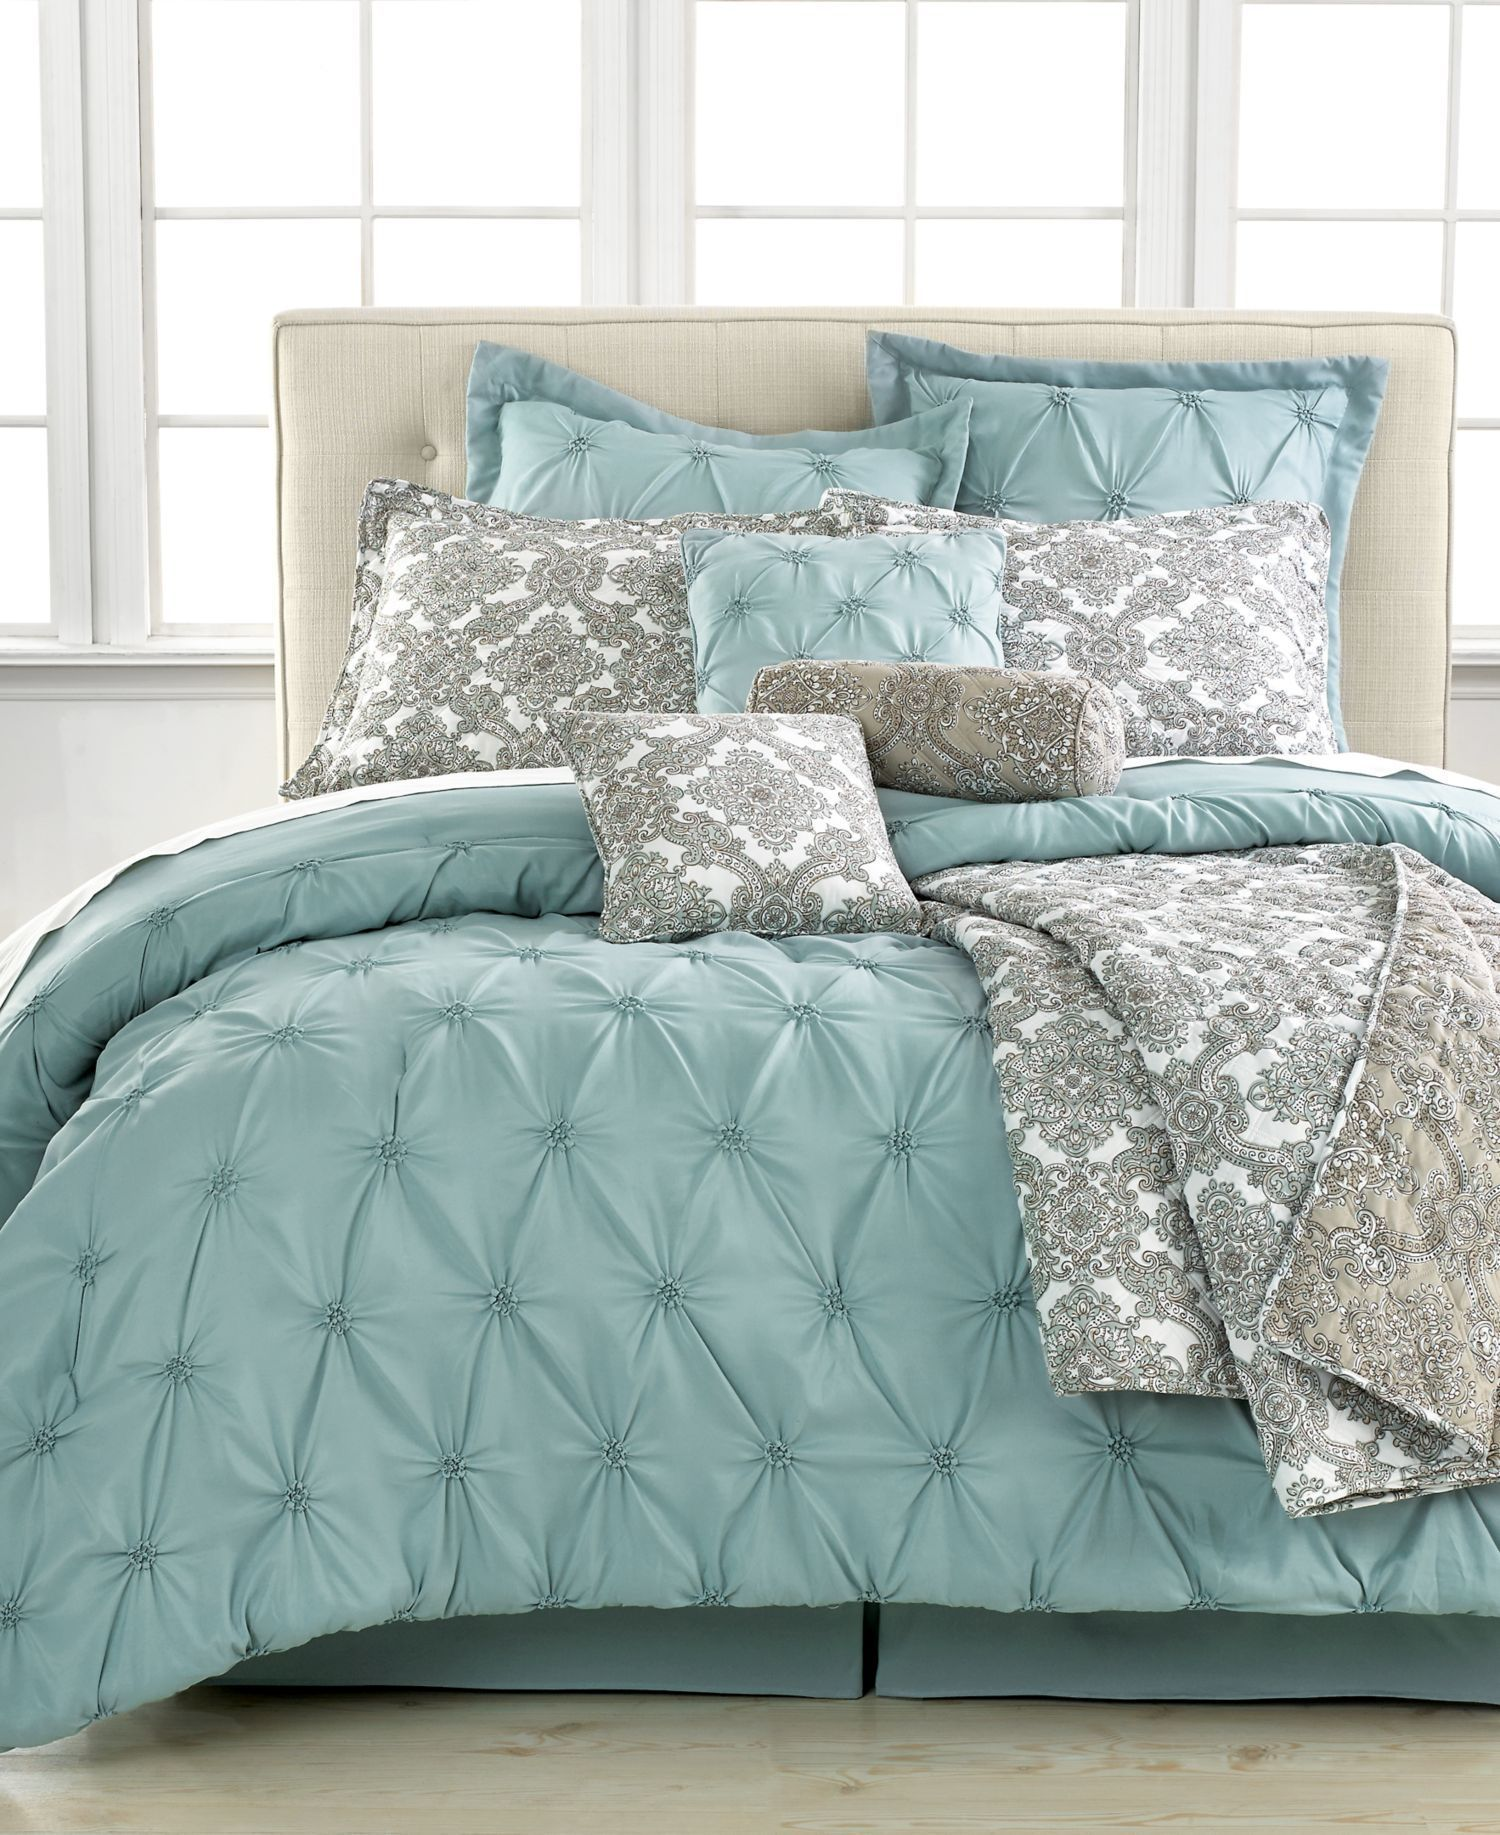 Neutral Bedroom Decorating Ideas Teal And Gray Bedroom: Pin By Jessica Rodriguez On Projects To Try